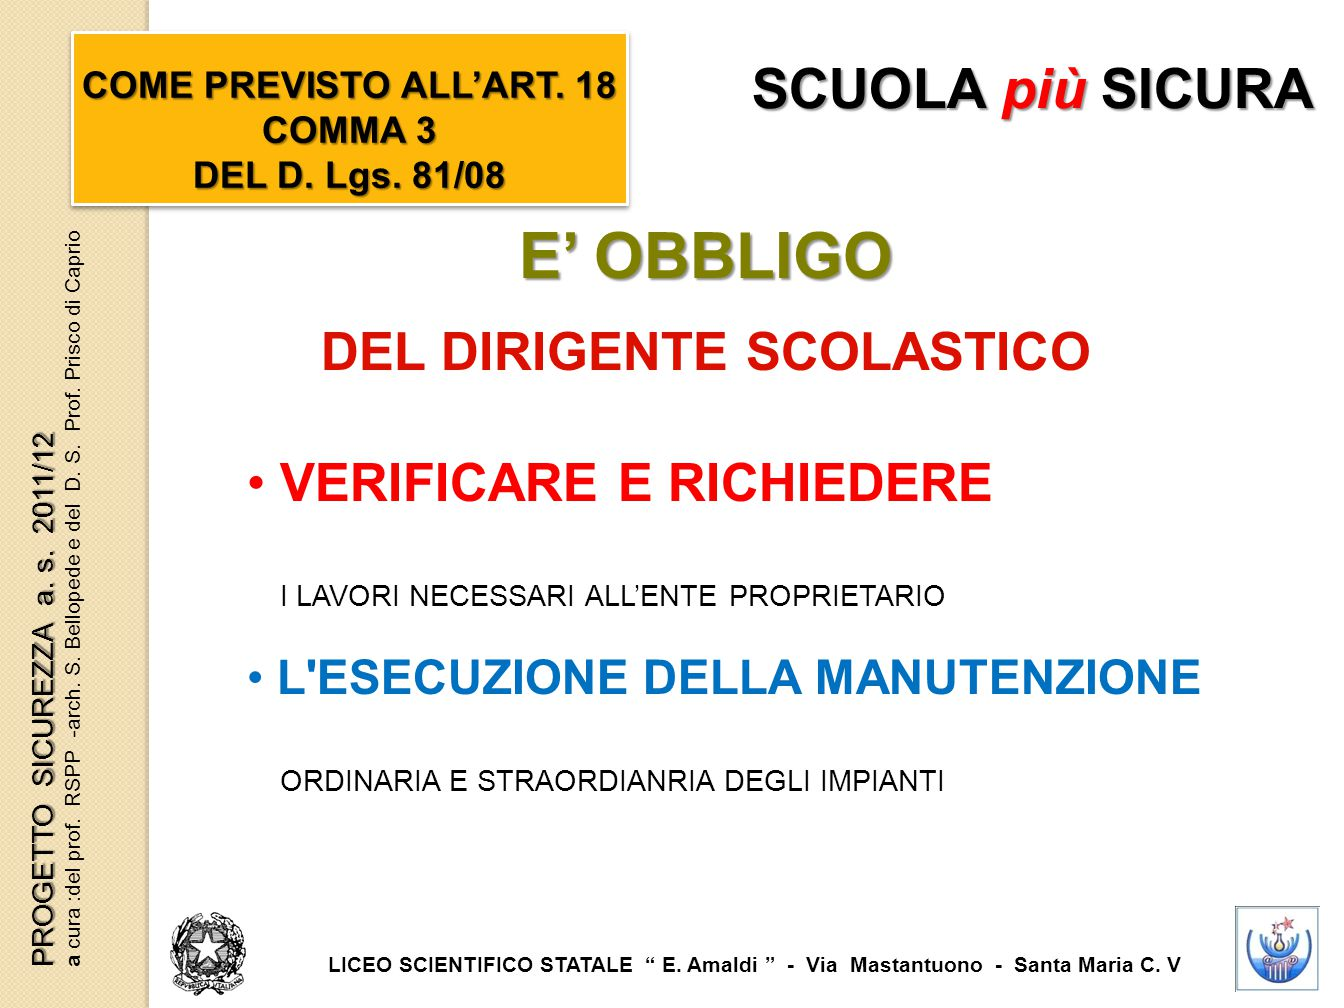 E' OBBLIGO DEL DIRIGENTE SCOLASTICO COME PREVISTO ALL'ART. 18 COMMA 3 DEL D. Lgs. 81/08 COME PREVISTO ALL'ART. 18 COMMA 3 DEL D. Lgs. 81/08 LICEO SCIE